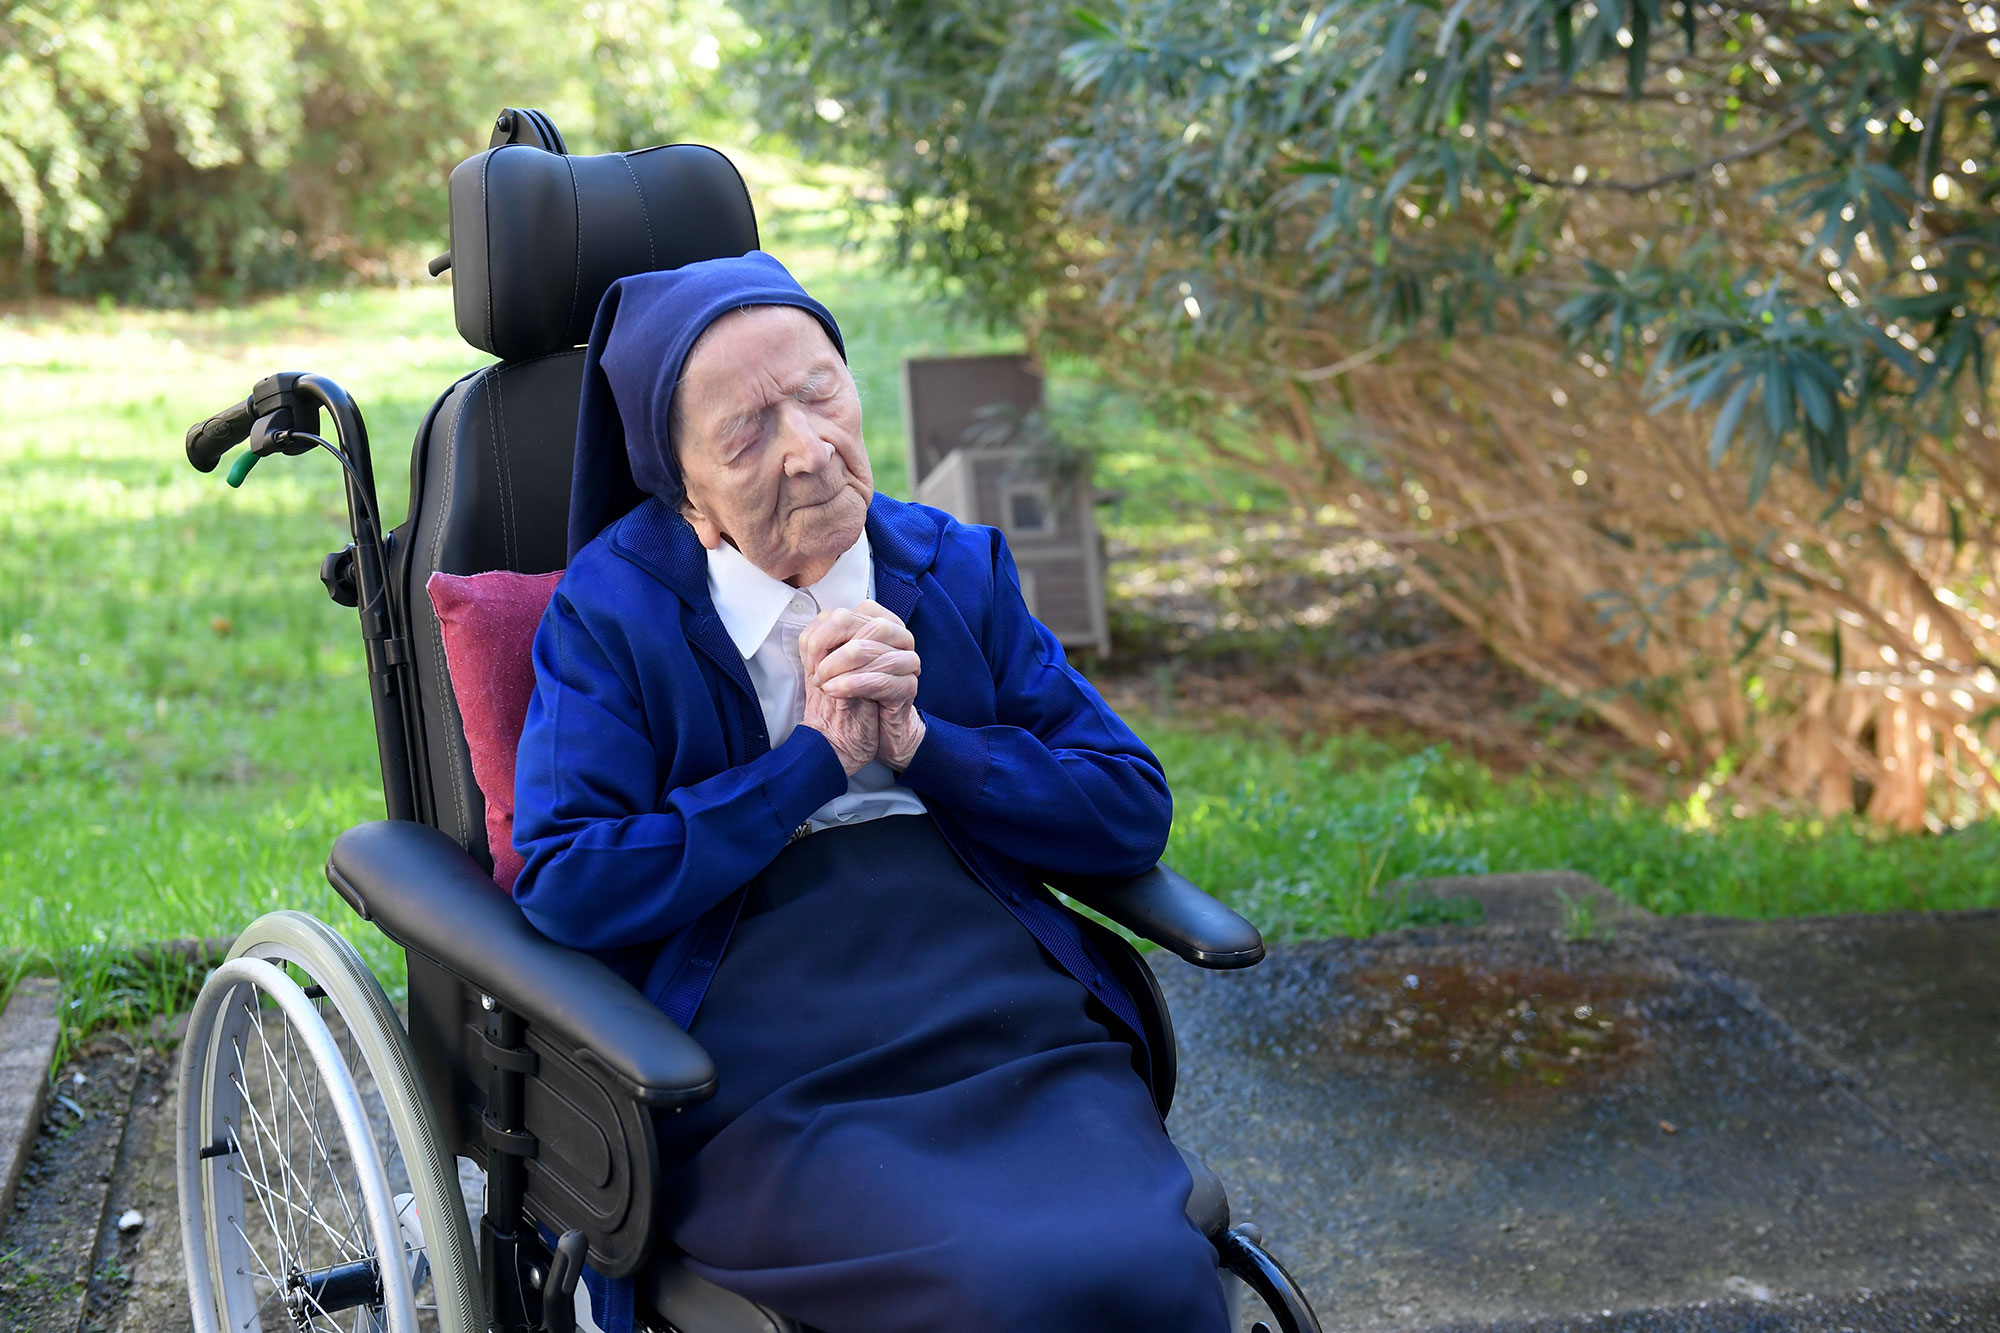 Sister André, the second oldest person